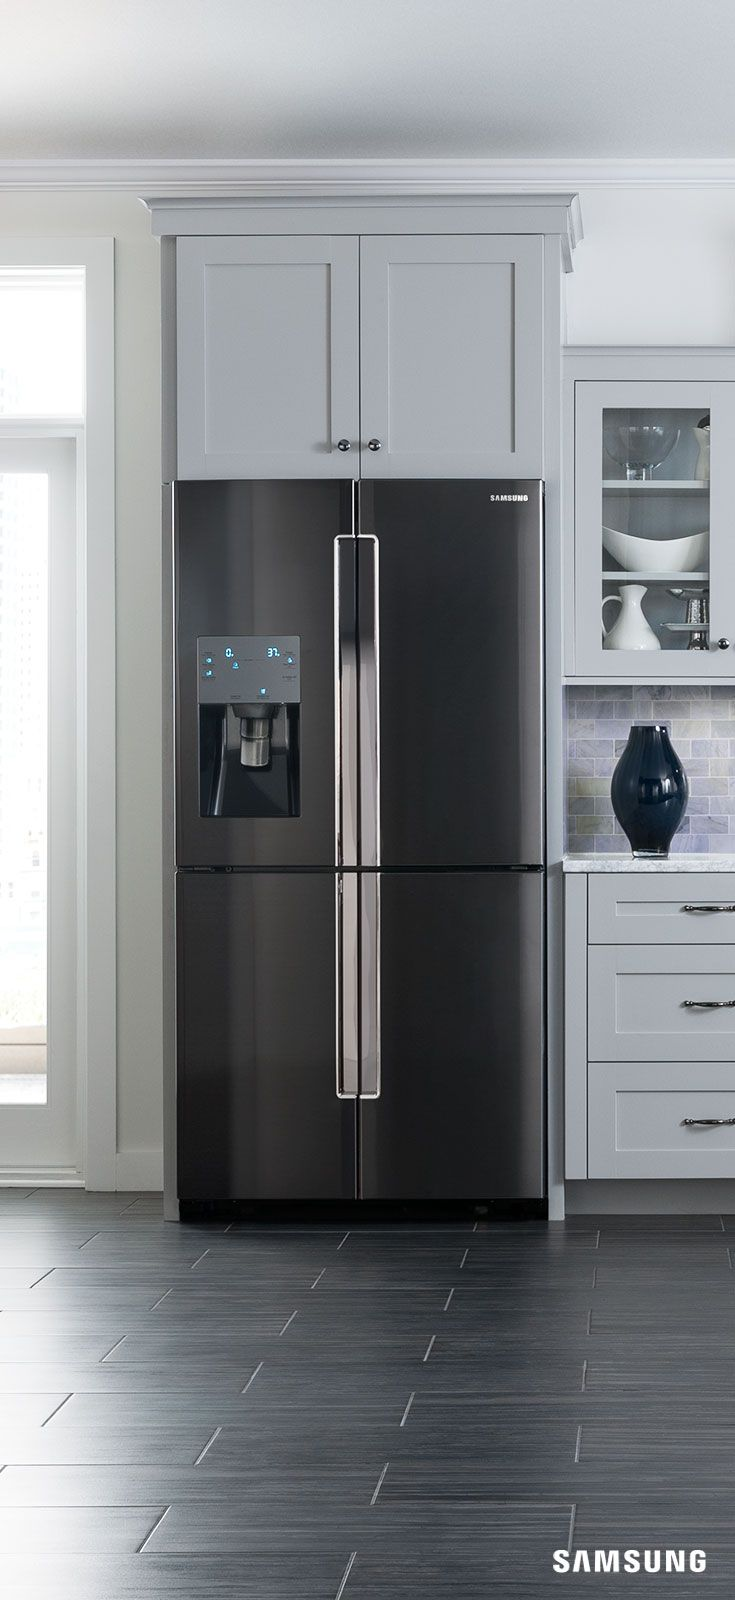 Quilted Kitchen Appliance Covers 17 Best Ideas About Stainless Steel Counters On Pinterest